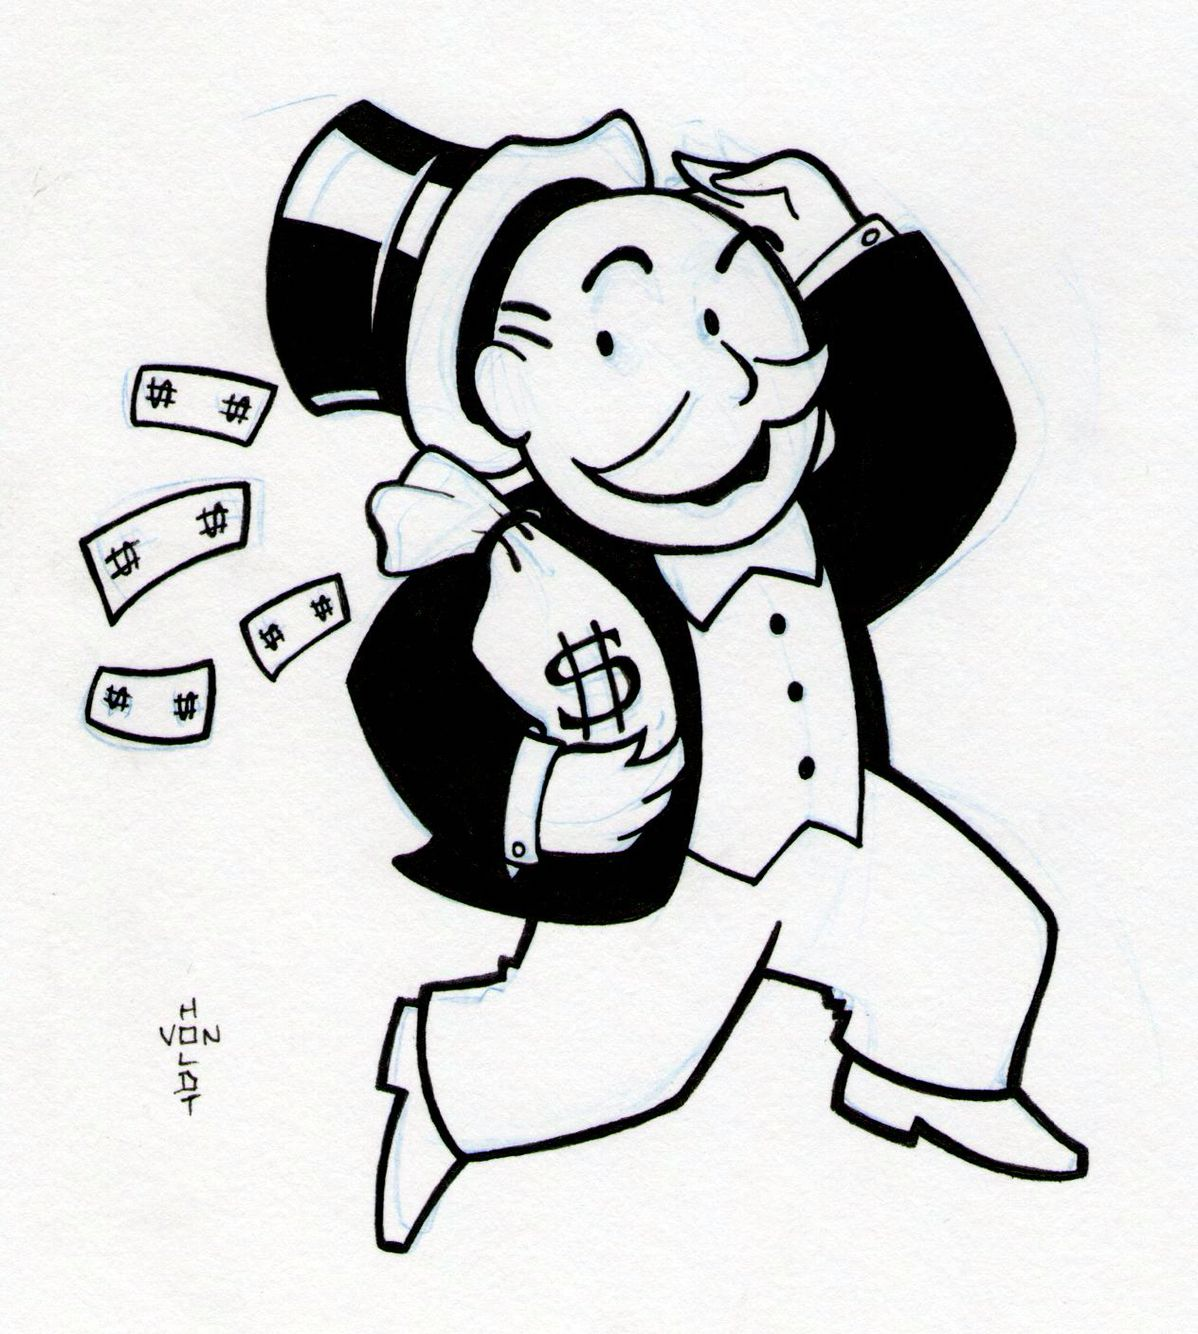 pin by jordan carpenter on student council pinterest woodburning rh pinterest co uk Mr. Monopoly Clip Art Monopoly Guy Clip Art